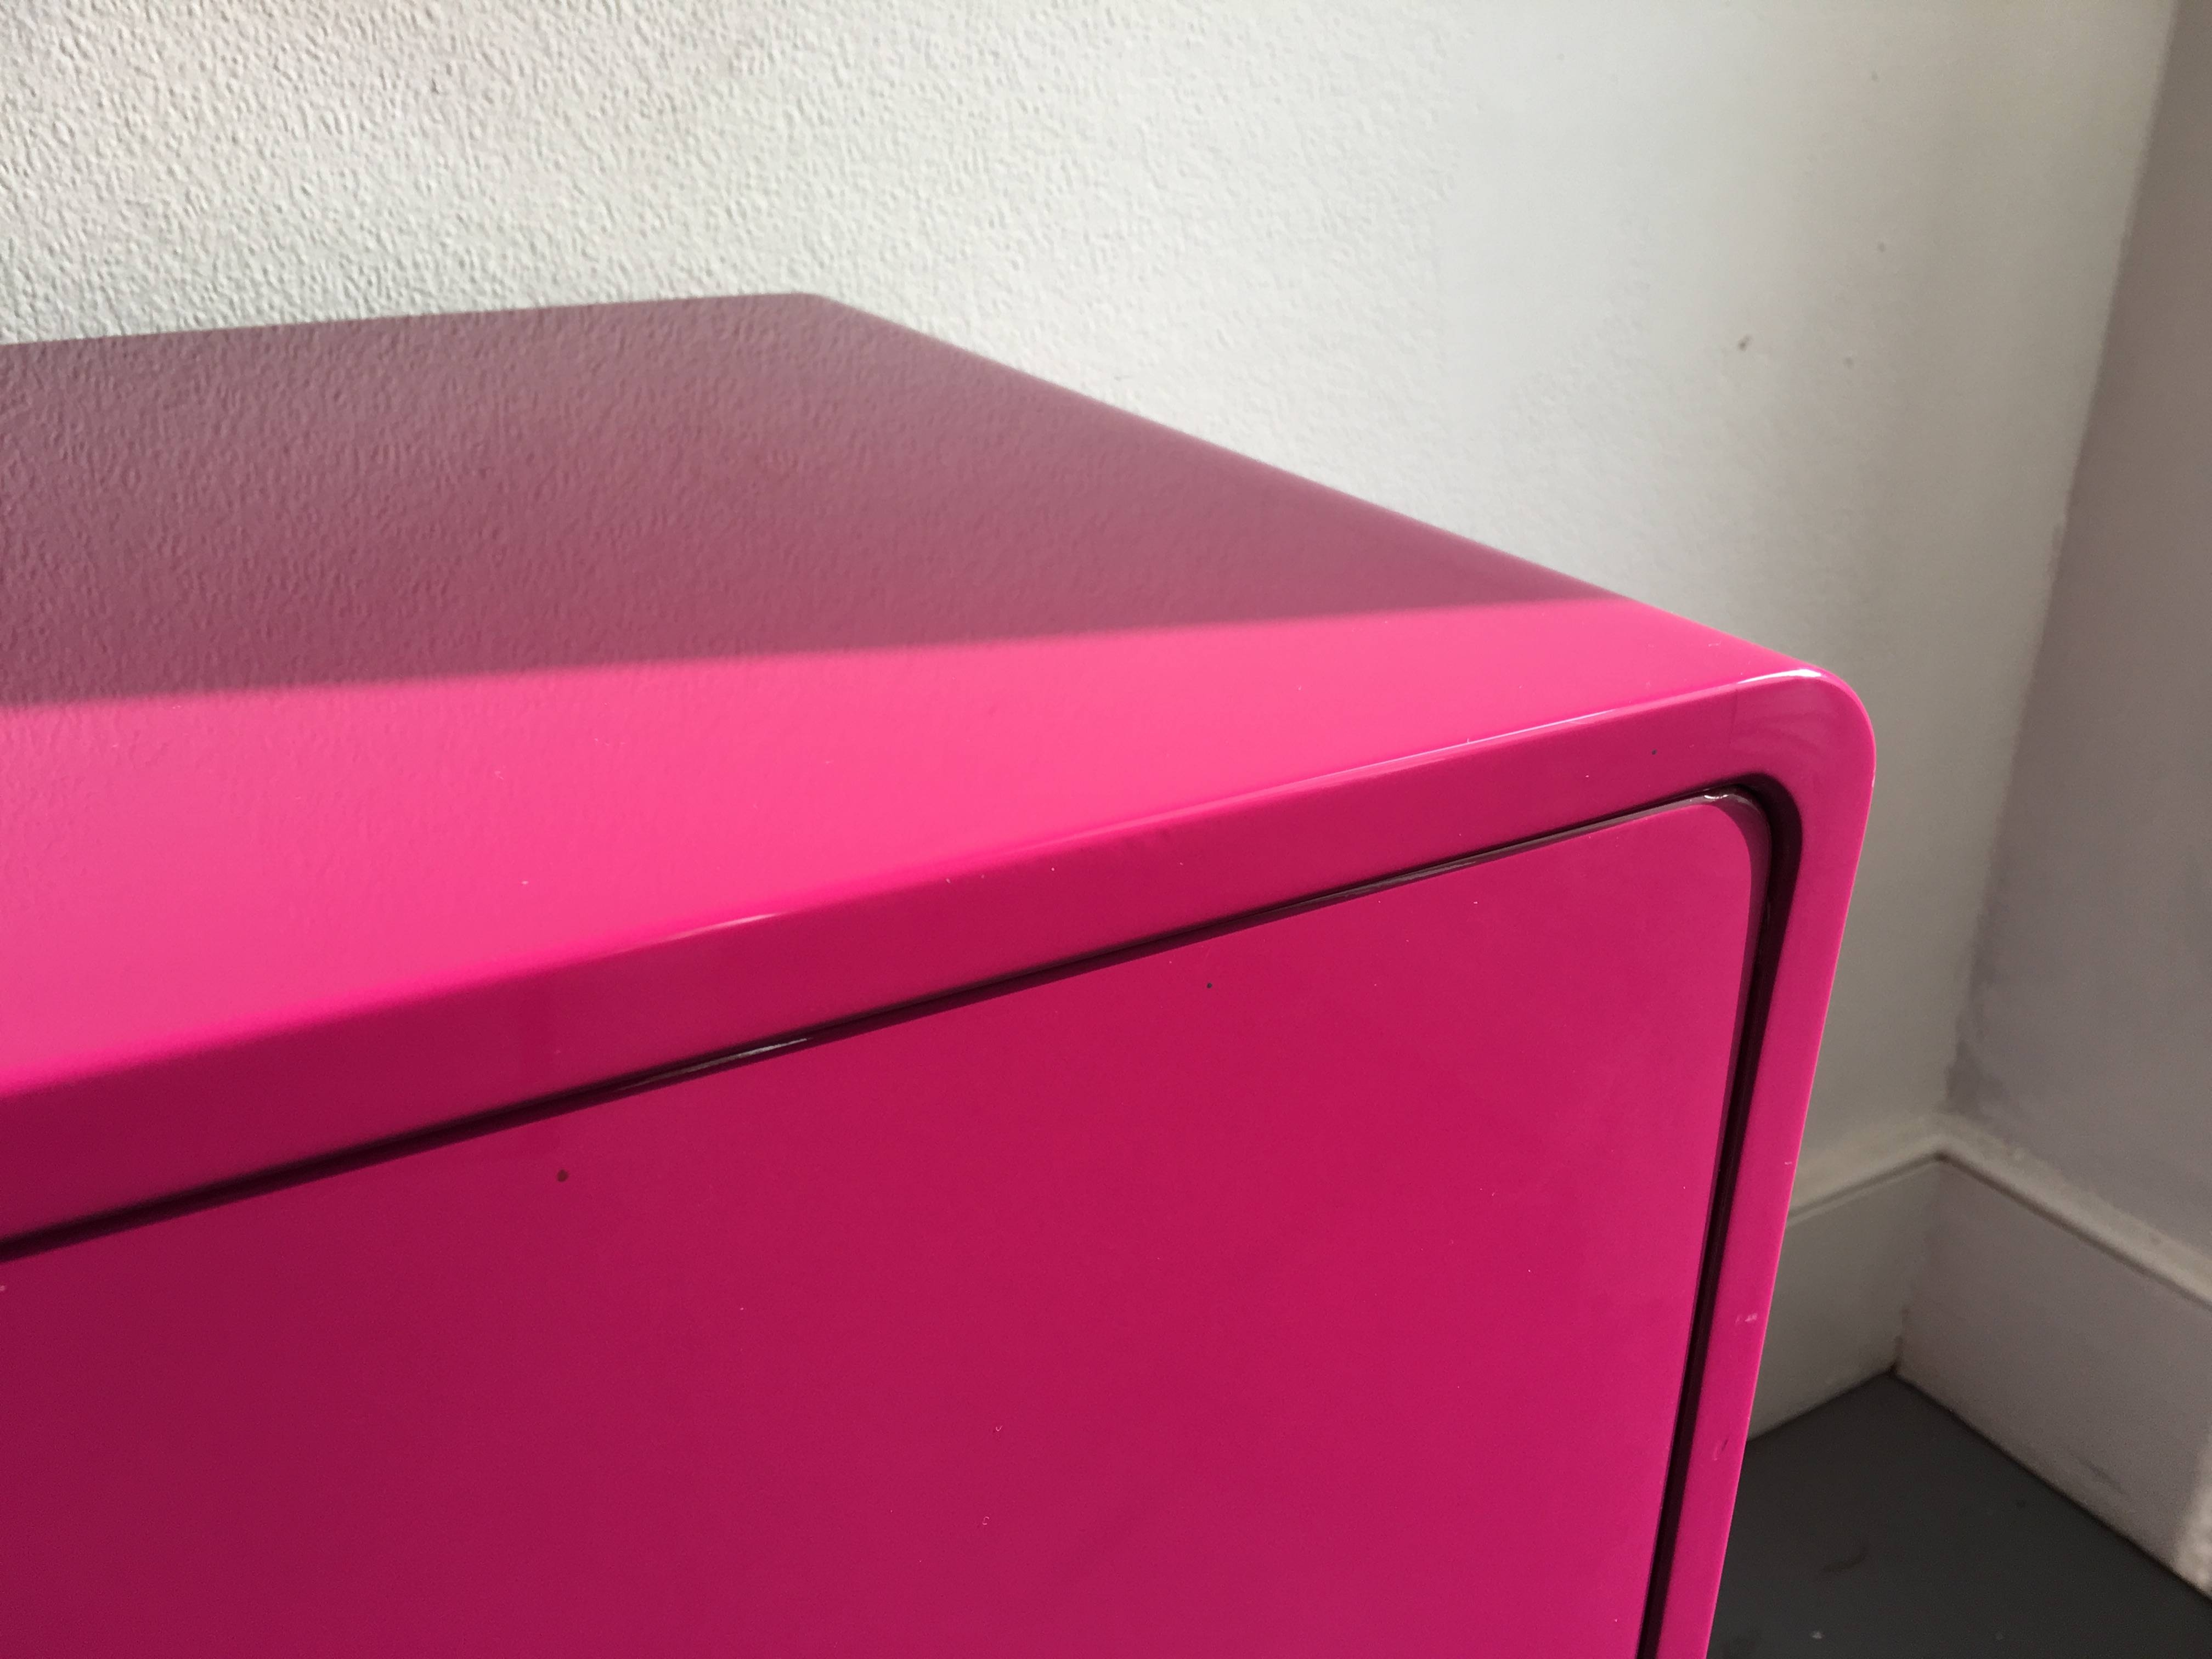 60's Inspired High Gloss Lacquered Sideboard In Hot Pink And Red Regarding Red High Gloss Sideboards (Photo 27 of 30)